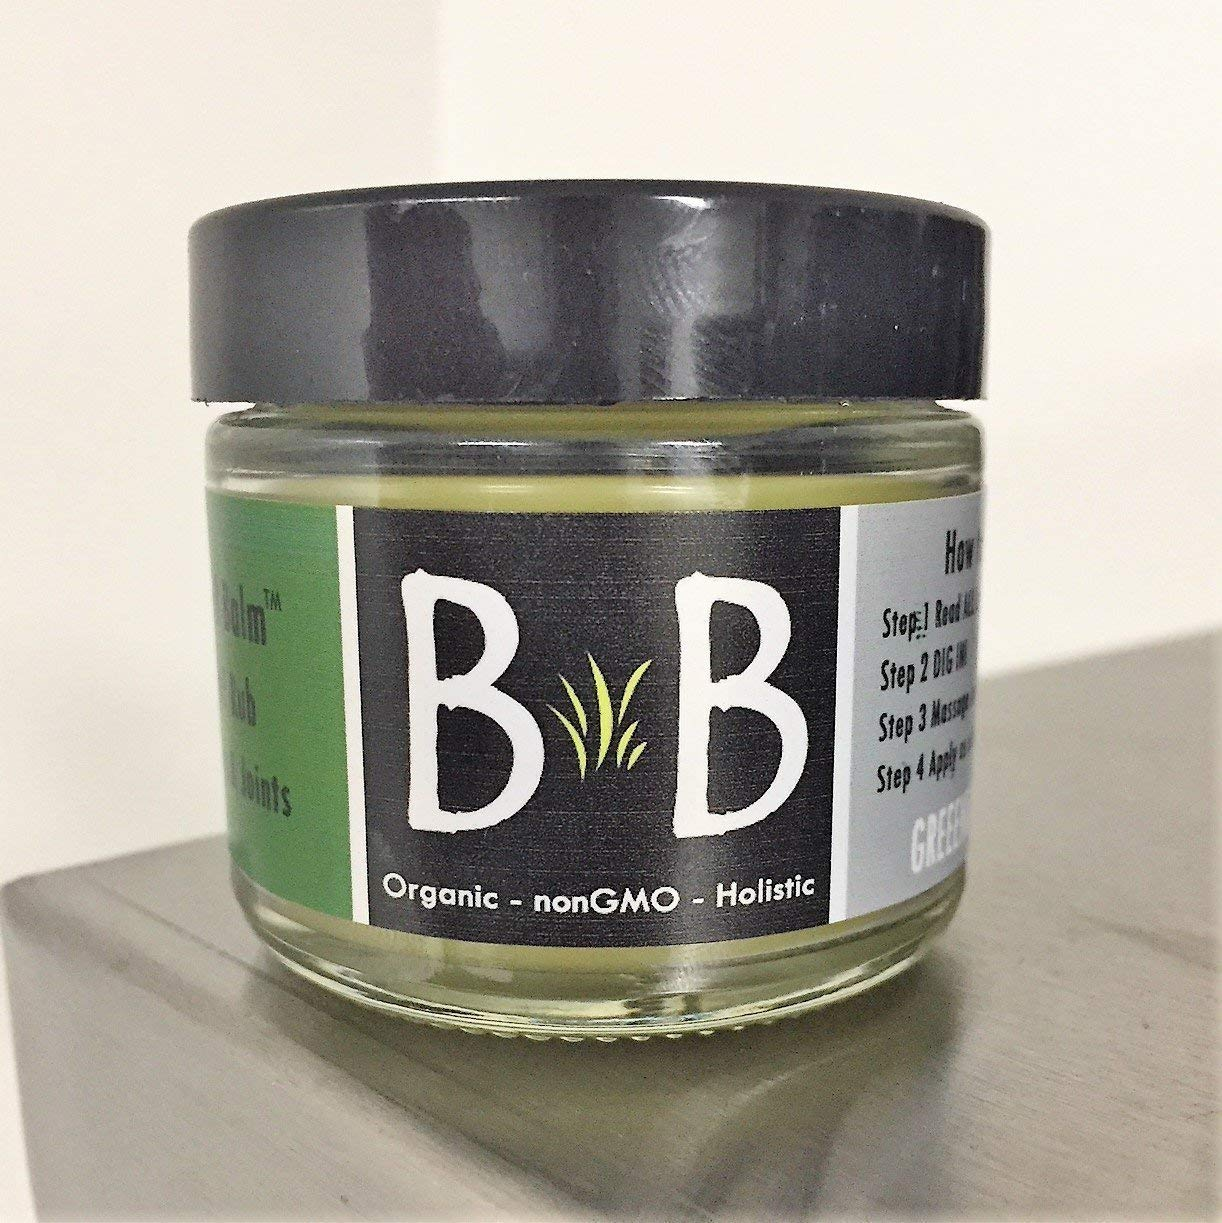 Hemp Balm - Muscles & Joints - 2 ounce - 10 Therapeutic Grade Essential Oils for pain and inflammation